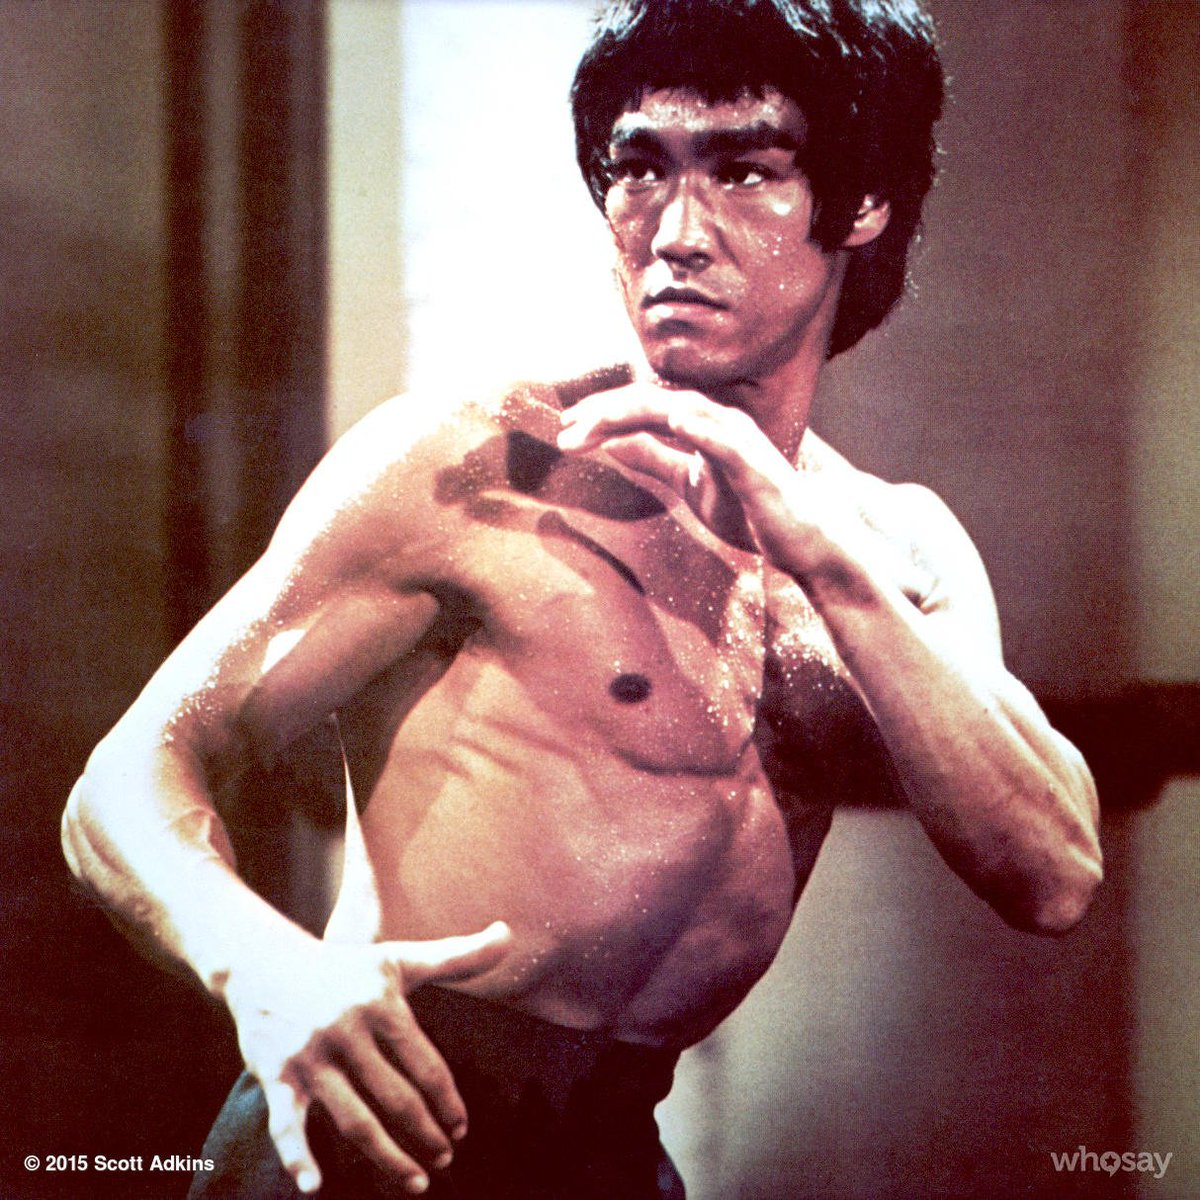 Happy 75th to the best there ever was and the best there ever will be #BruceLee75 @brucelee https://t.co/7DPvvpc4ot